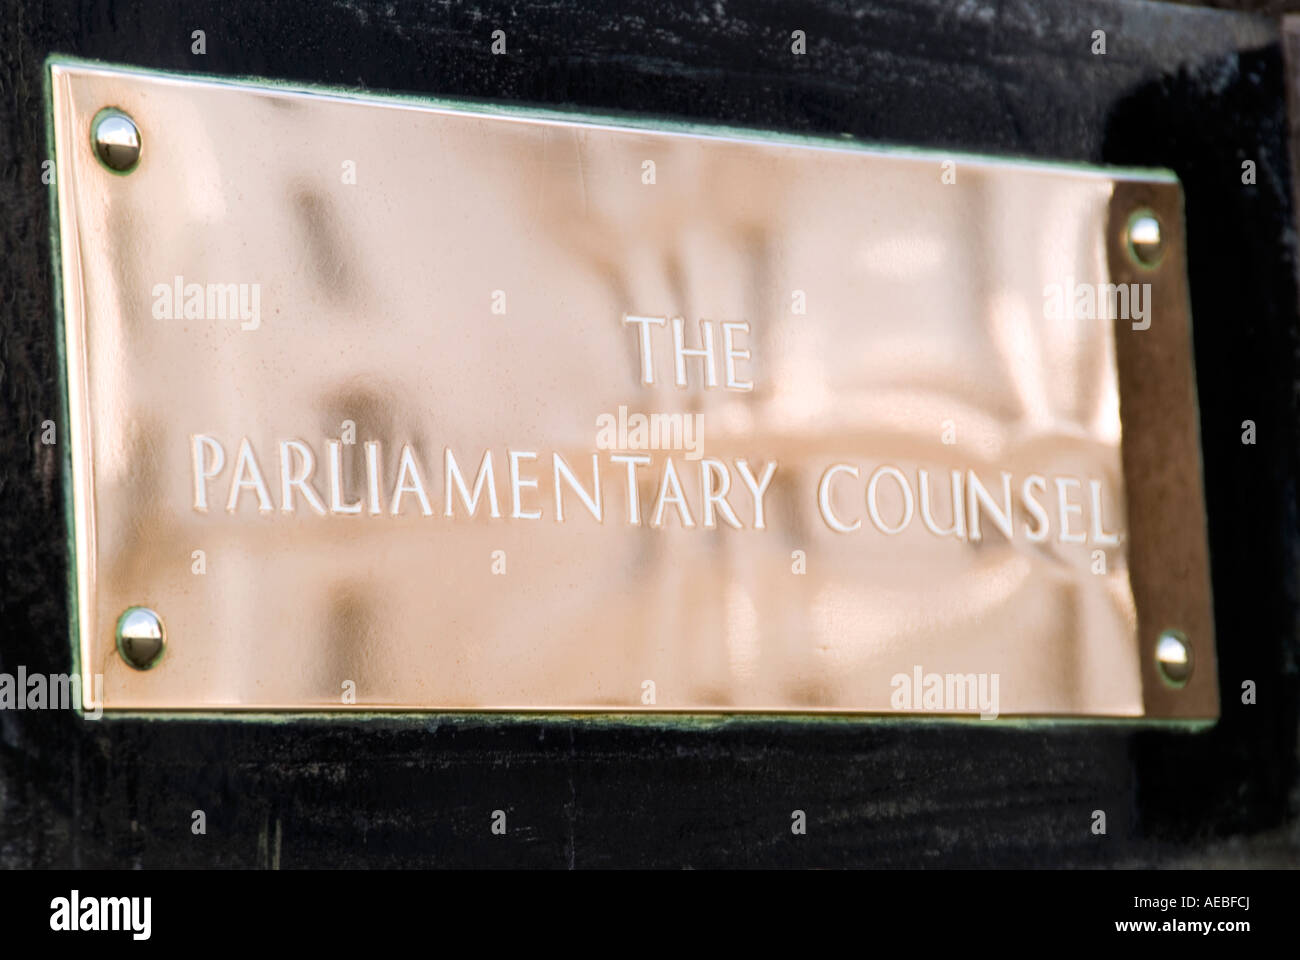 Brass name plaque of The Parliamentary Counsel government office in Whitehall Central London UK - Stock Image